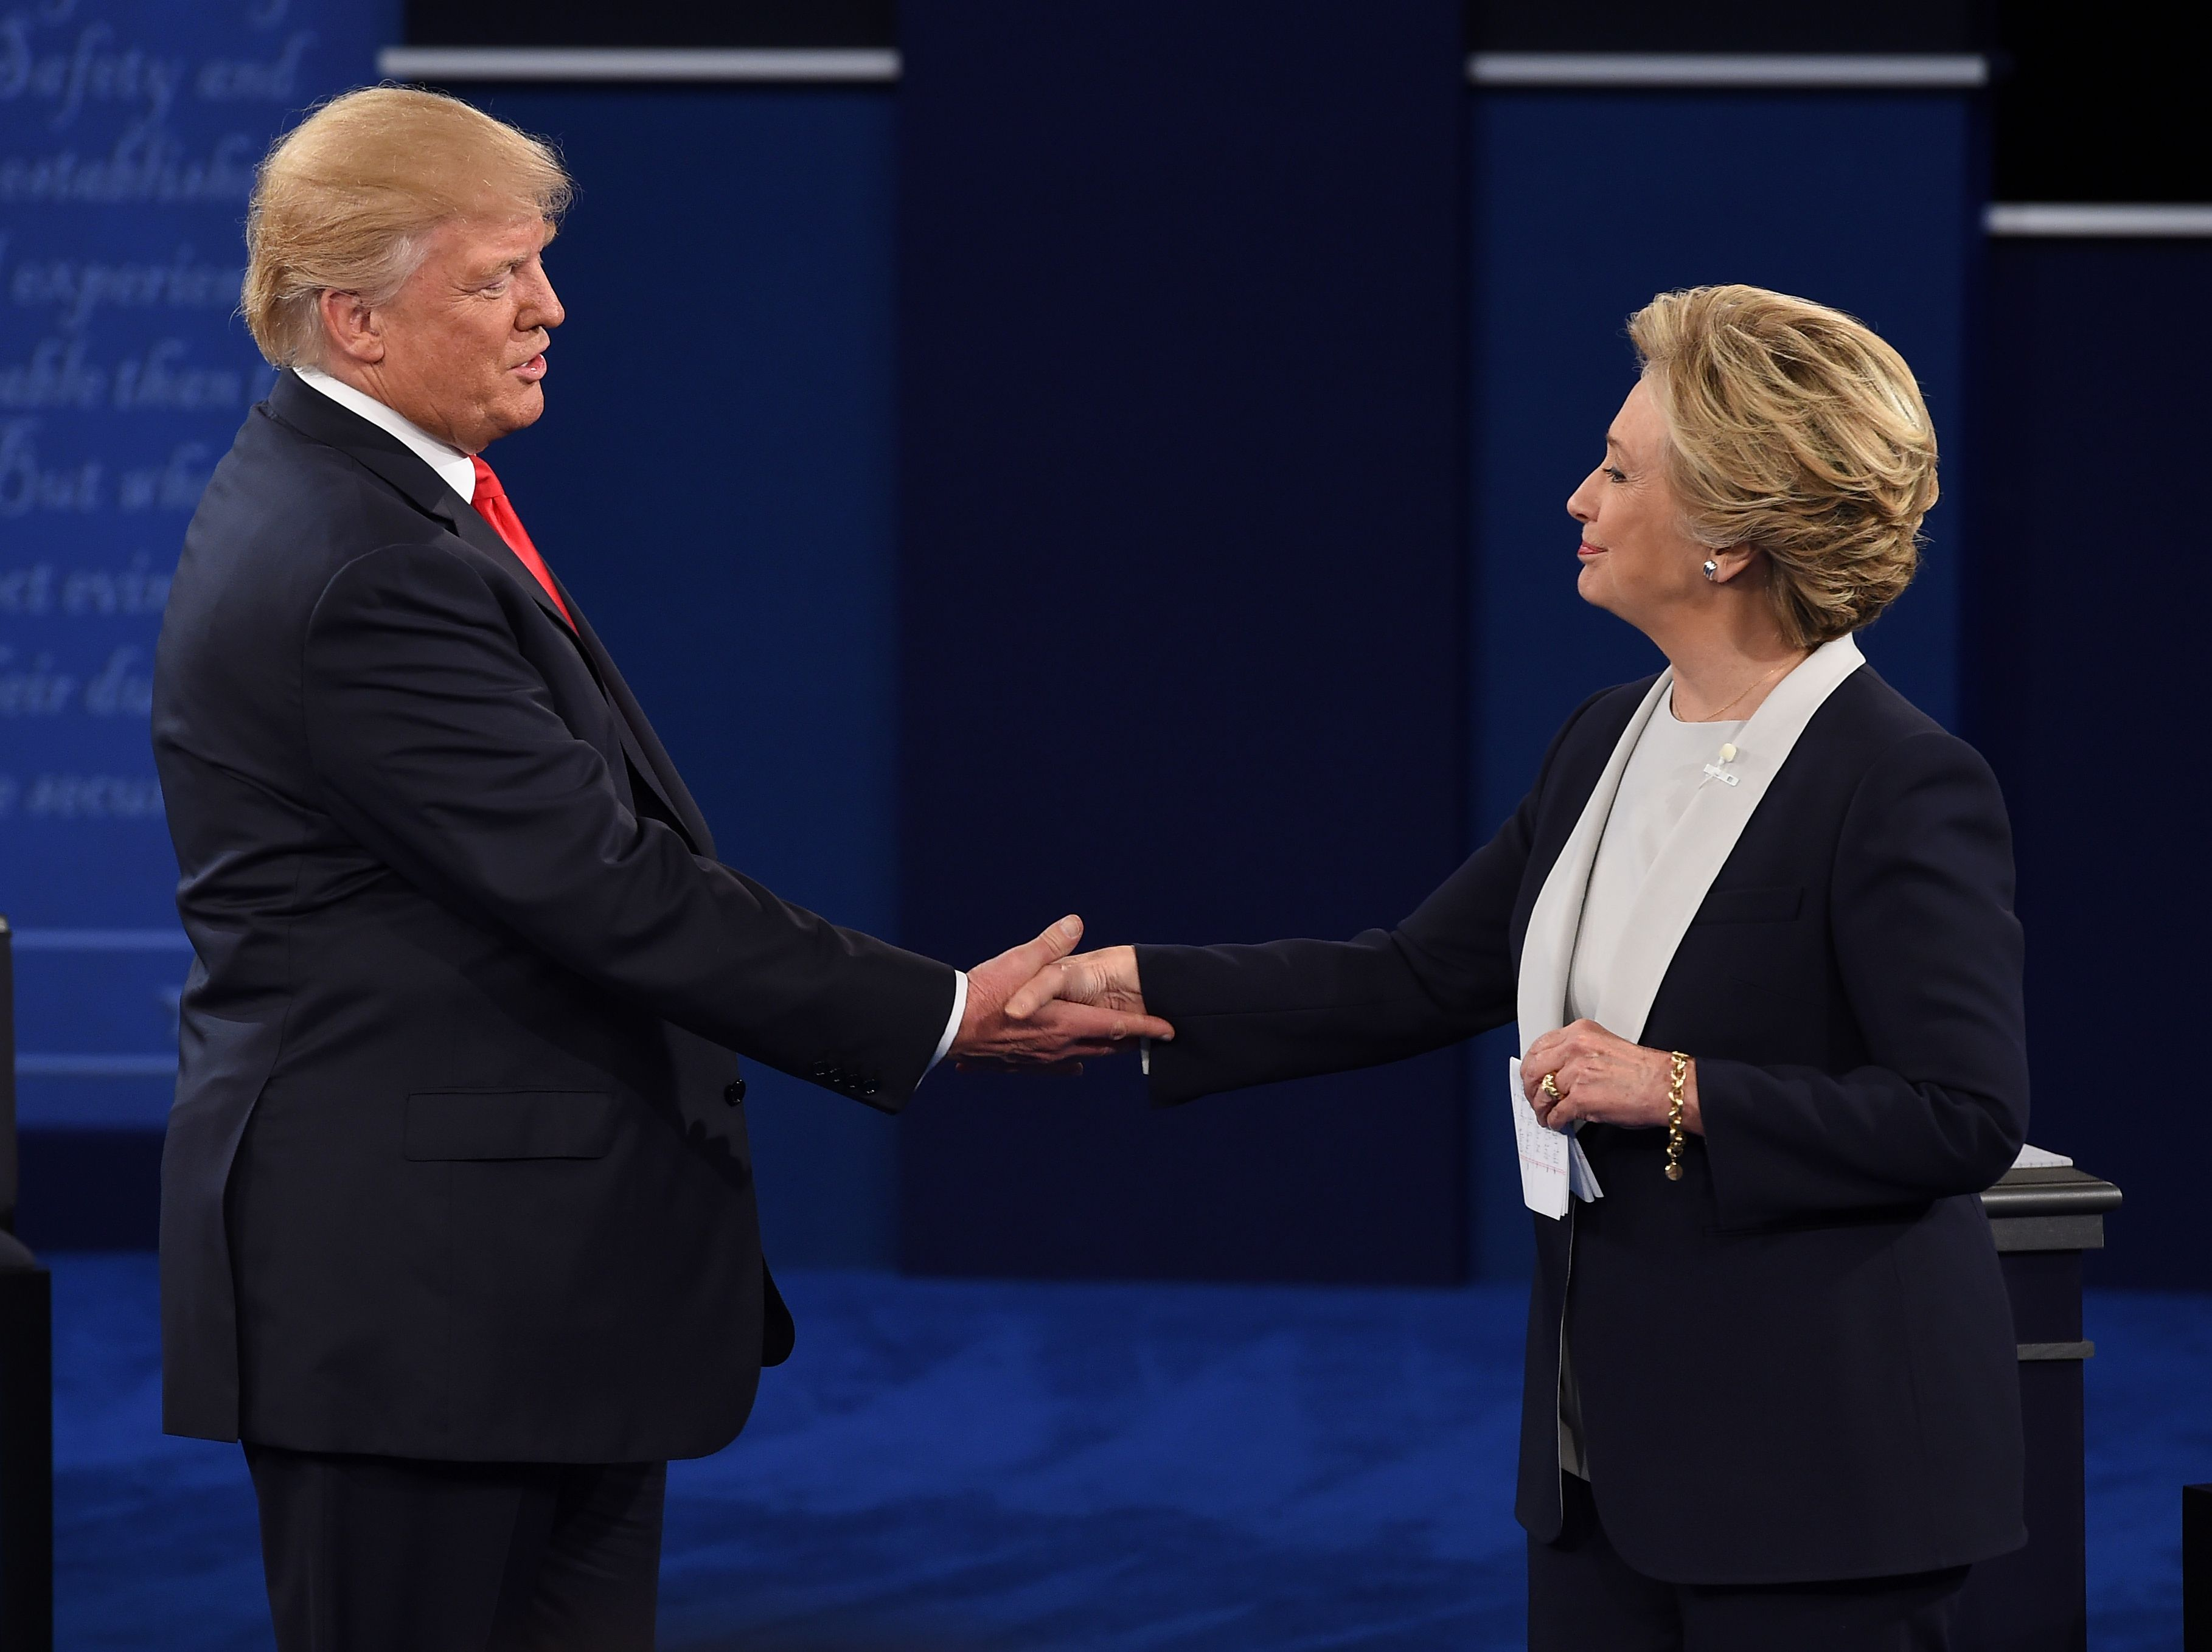 US Democratic presidential candidate Hillary Clinton (R) and US Republican presidential candidate Donald Trump at the end of the second presidential debate at Washington University in St. Louis, Missouri. (Photo credit should read ROBYN BECK/AFP/Getty Images)